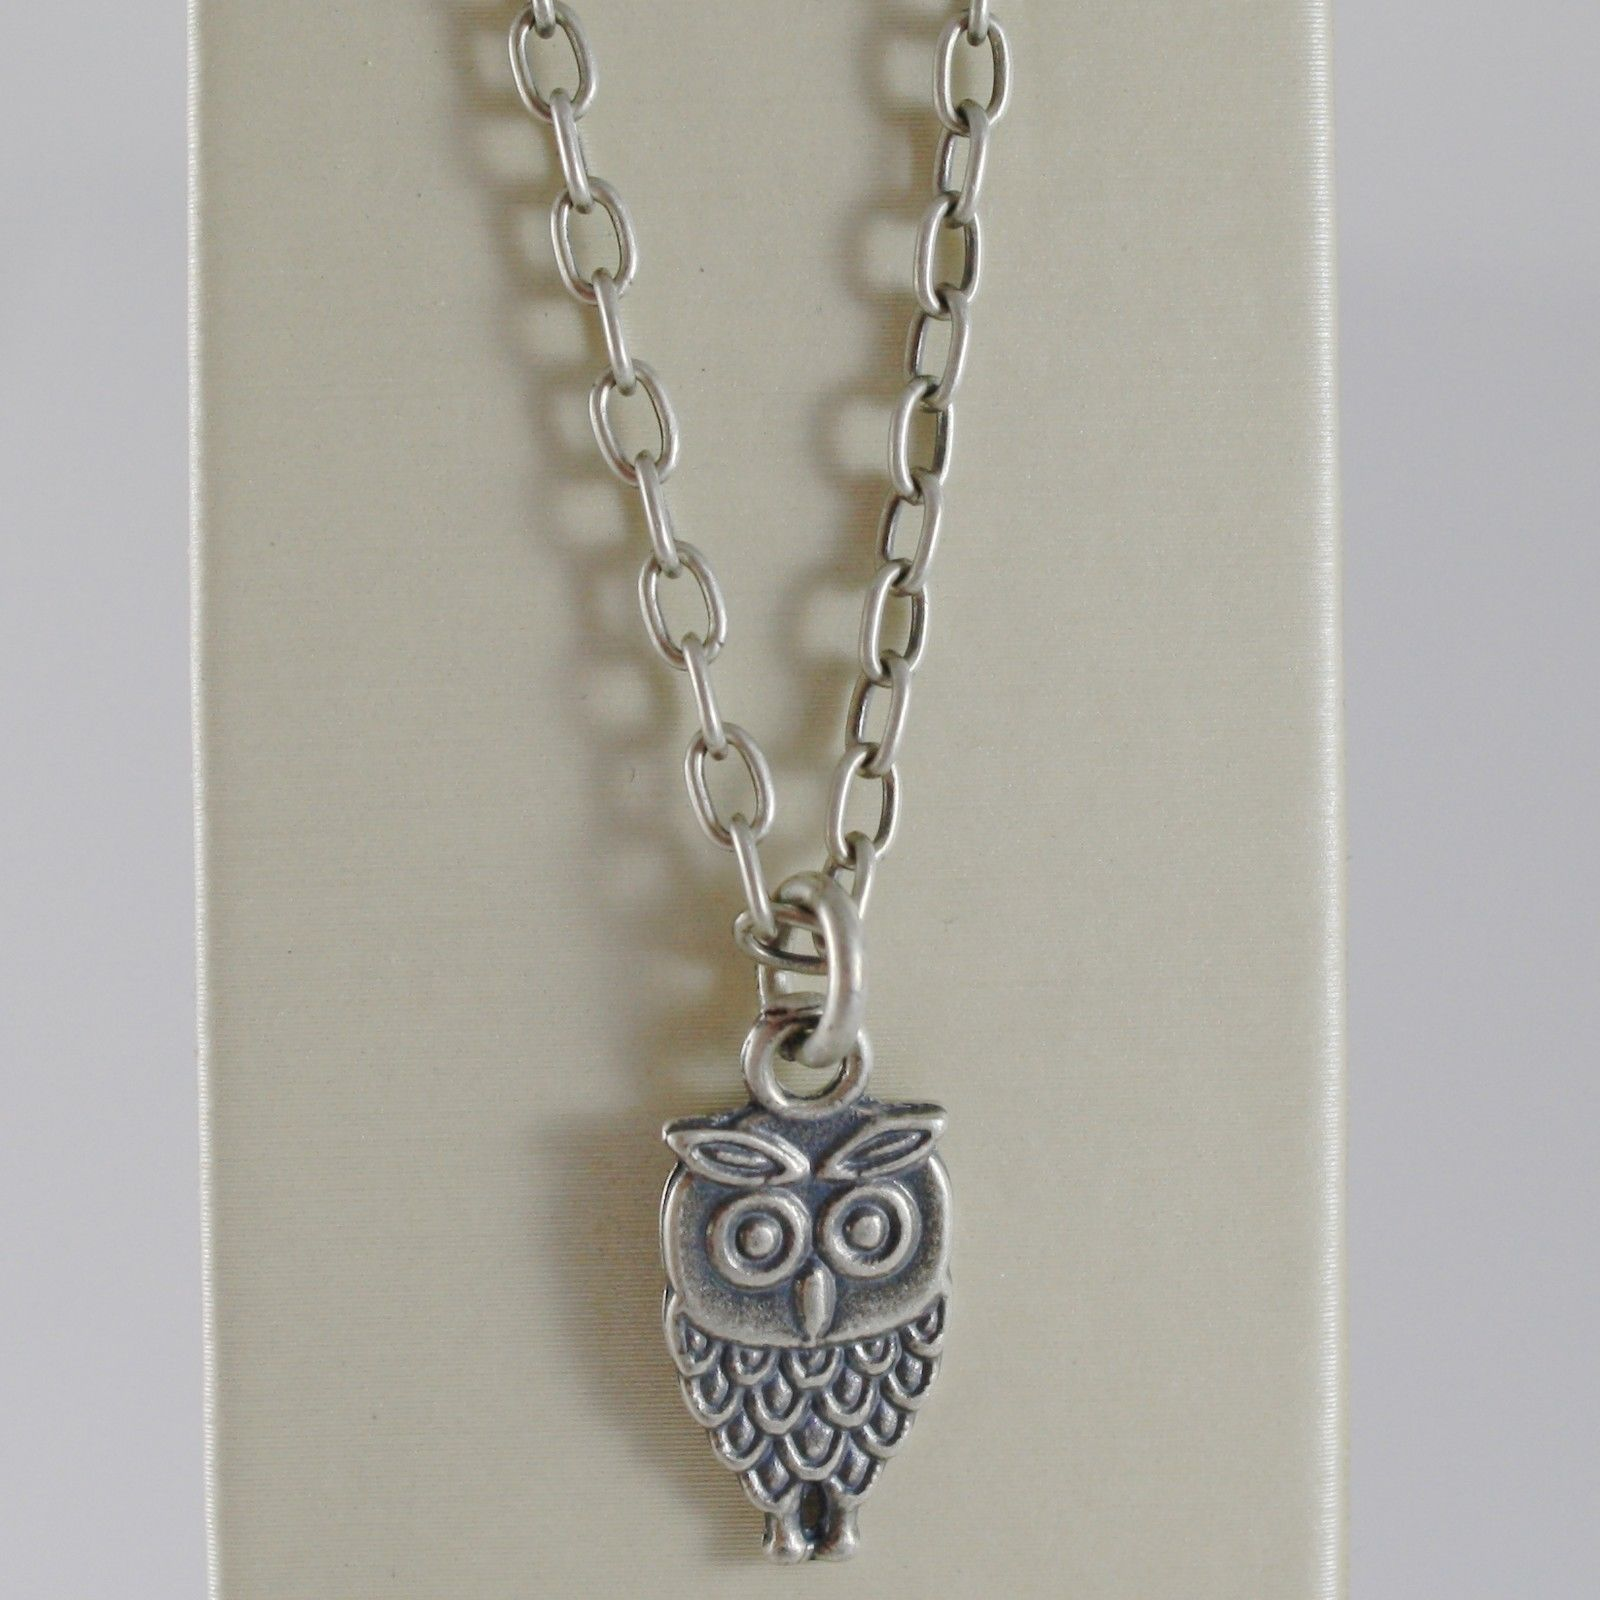 925 BURNISHED SILVER NECKLACE FLAT OWL PENDANT WITH OVAL CHAIN MADE IN ITALY